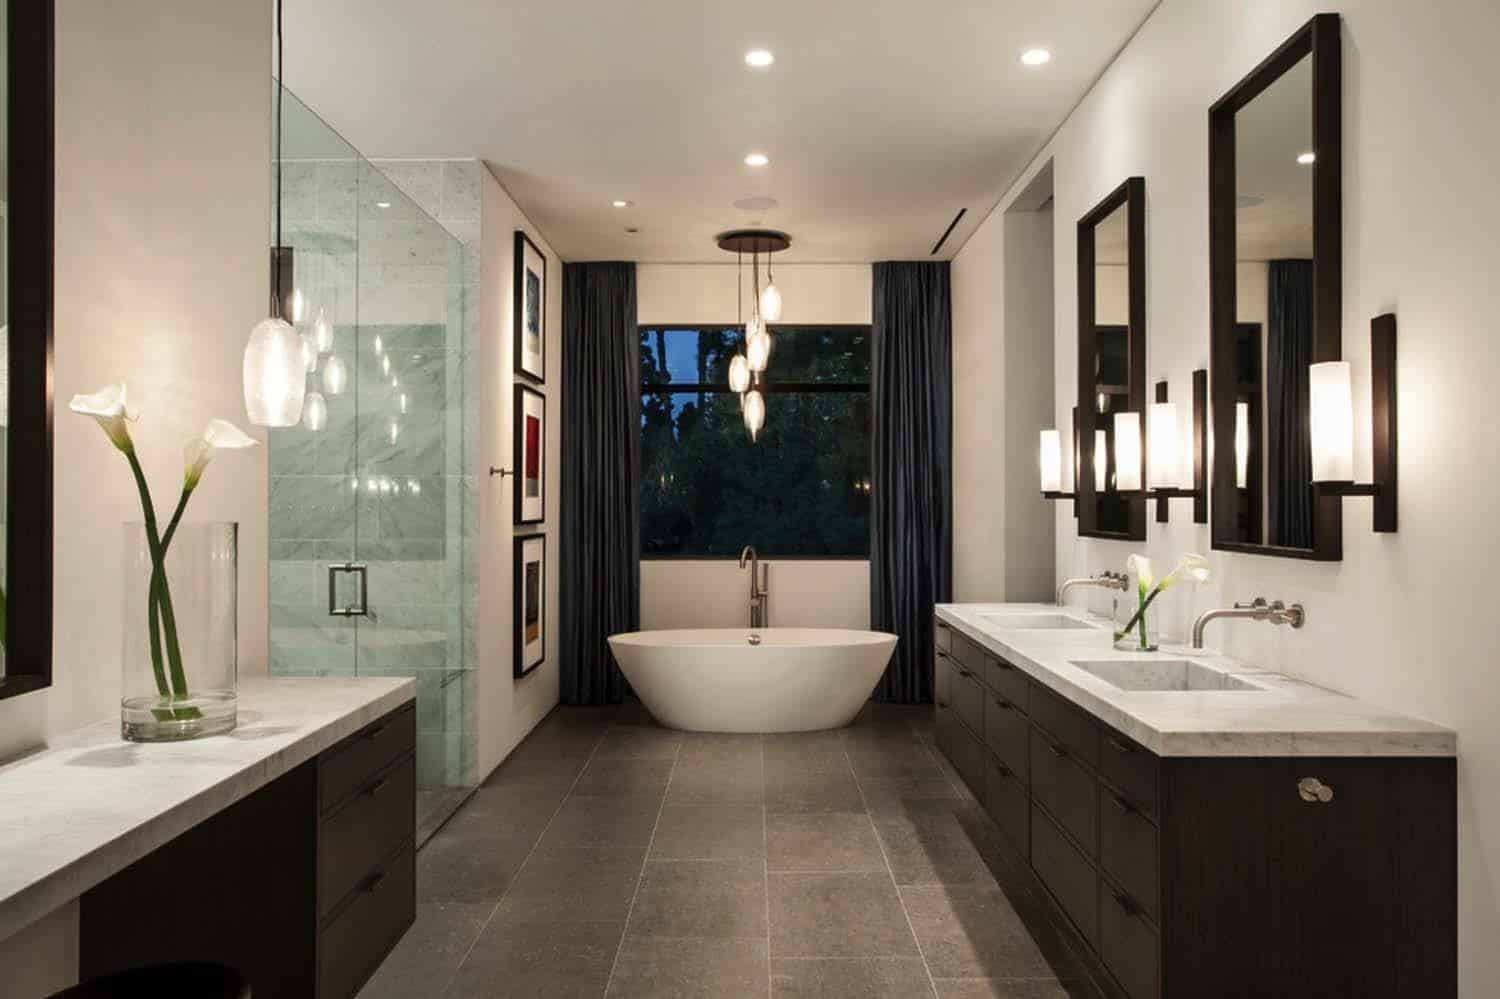 Contemporary Home-Laidlaw Schultz Architects-16-1 Kindesign